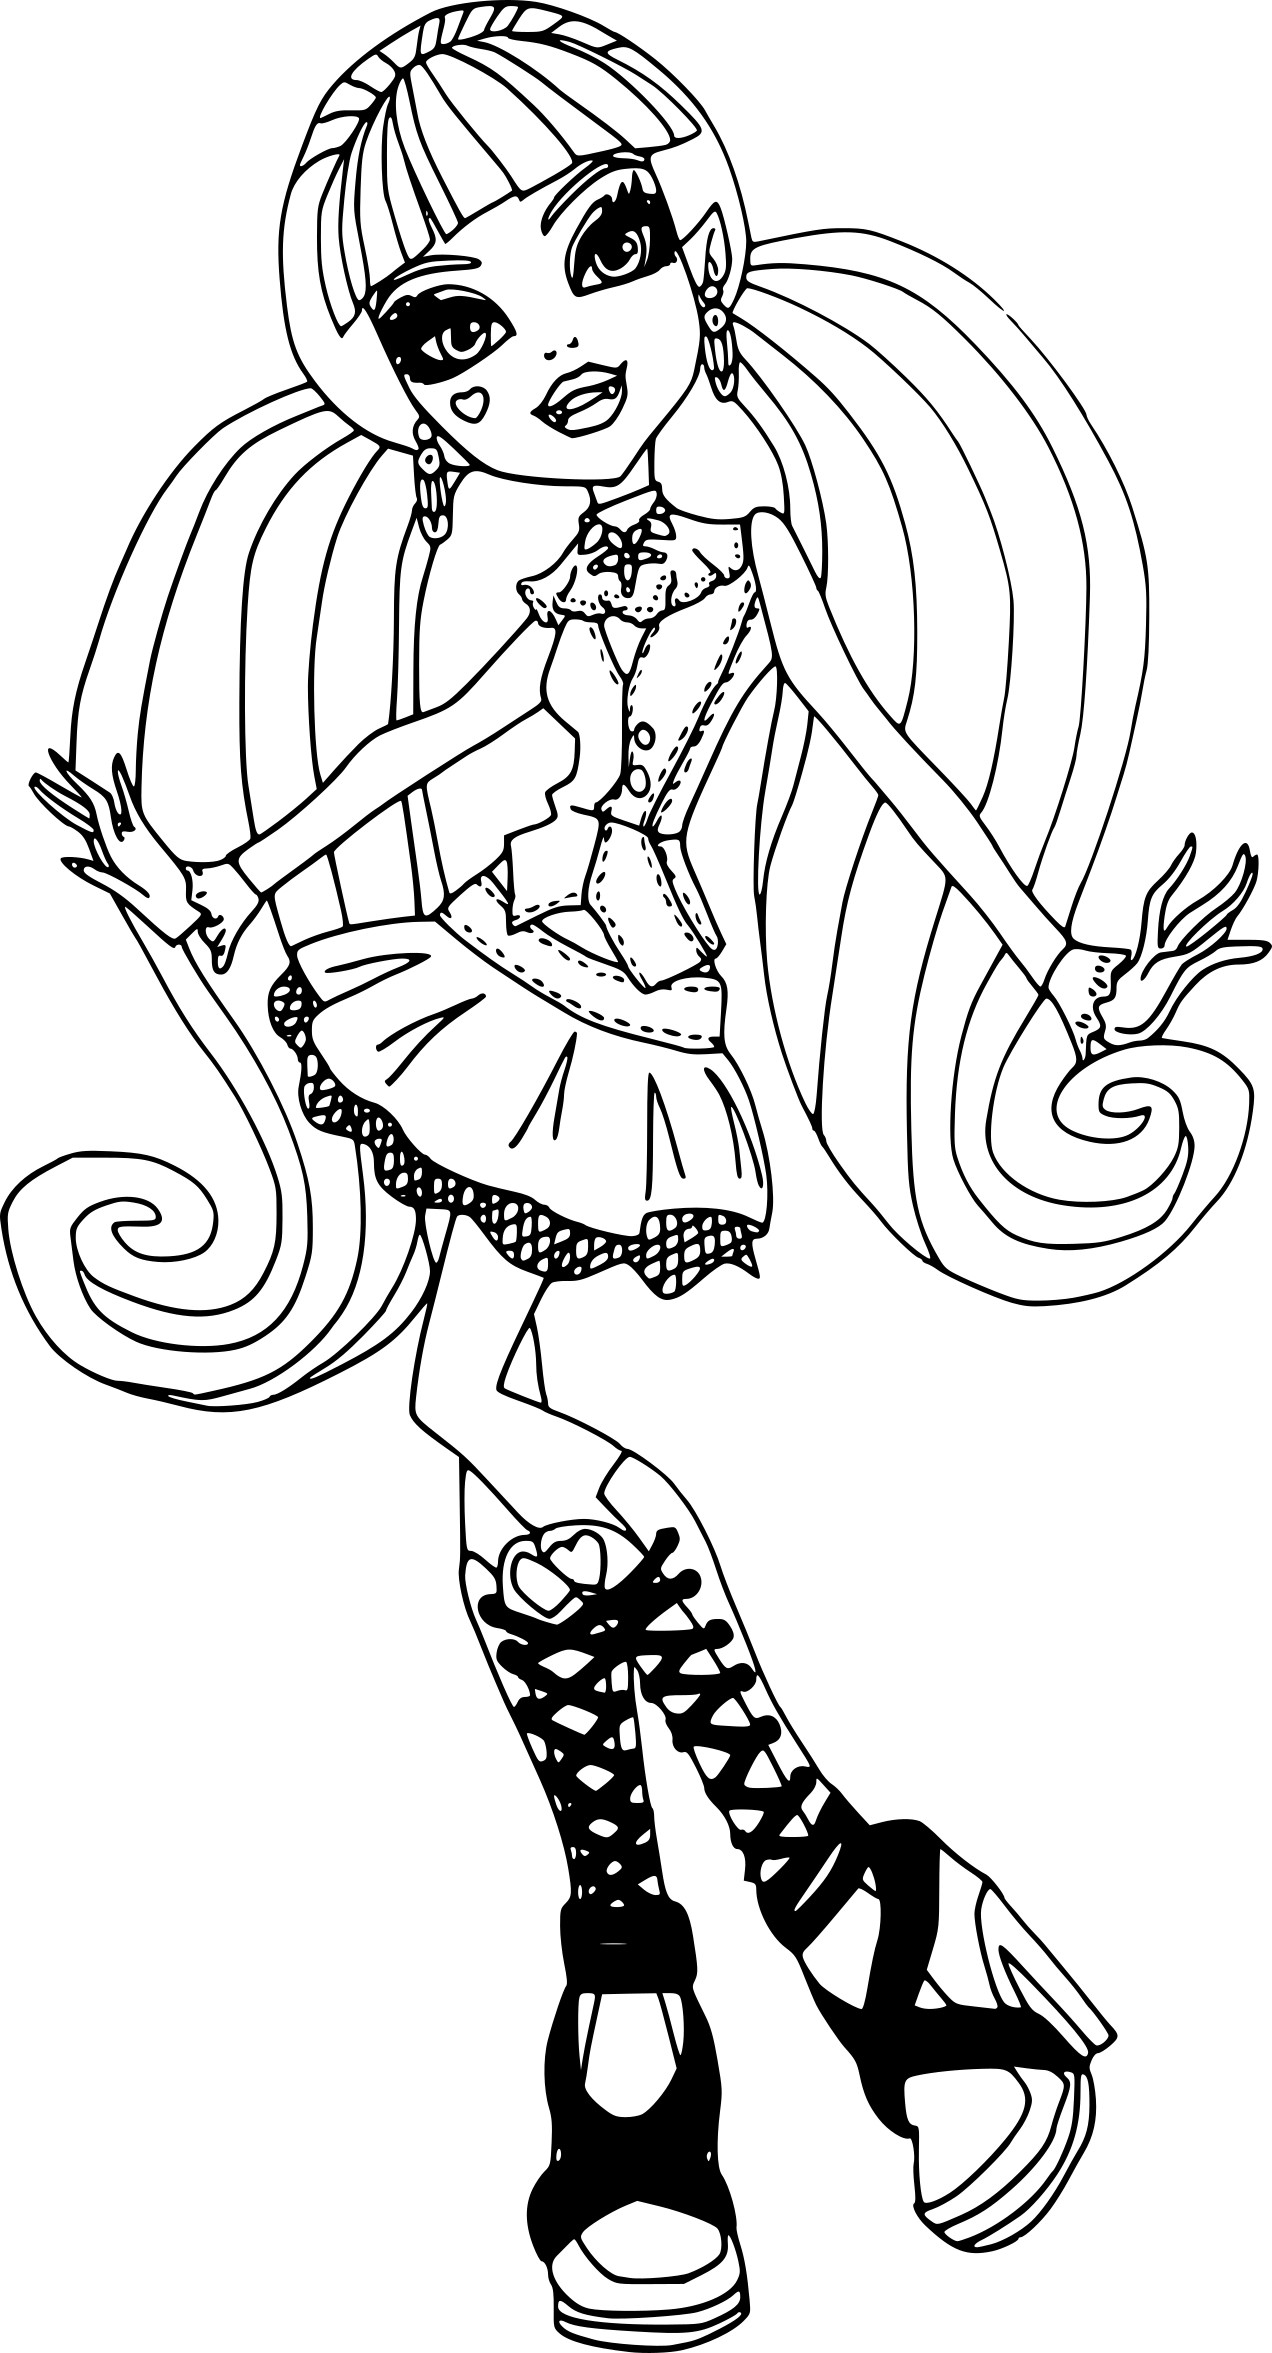 Coloriage monster high draculaura imprimer - Coloriage de monster ...